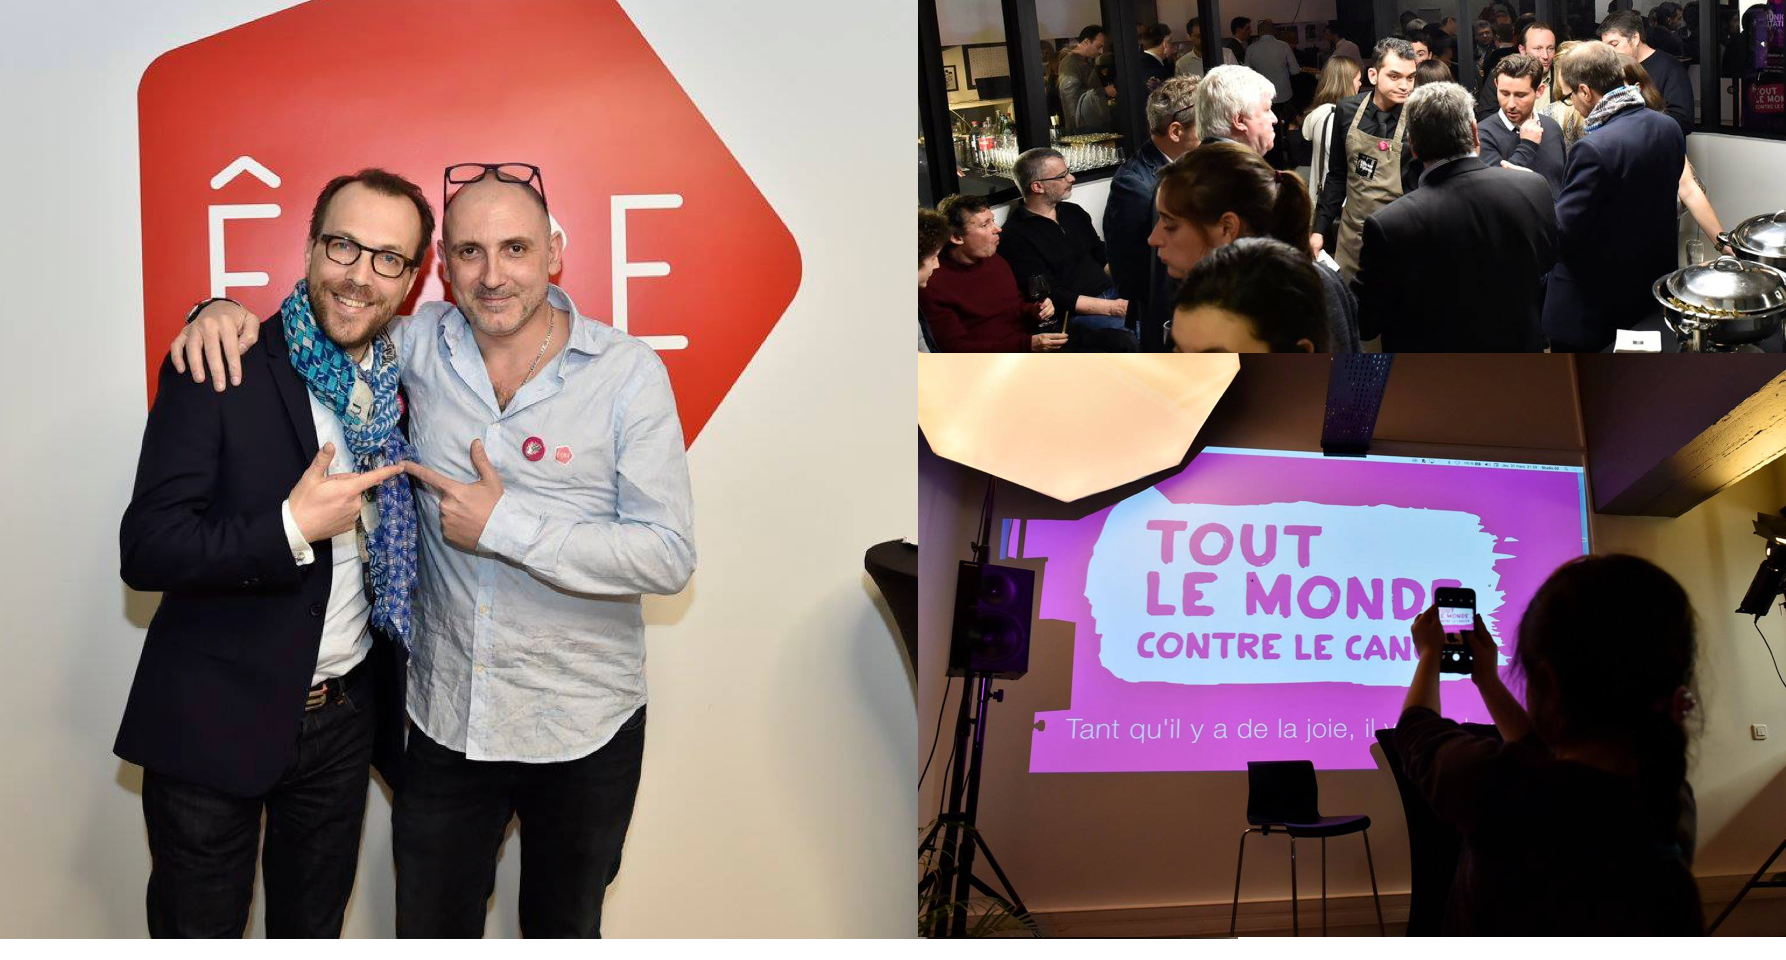 EVENT TOUT LE MONDE CONTRE LE CANCER